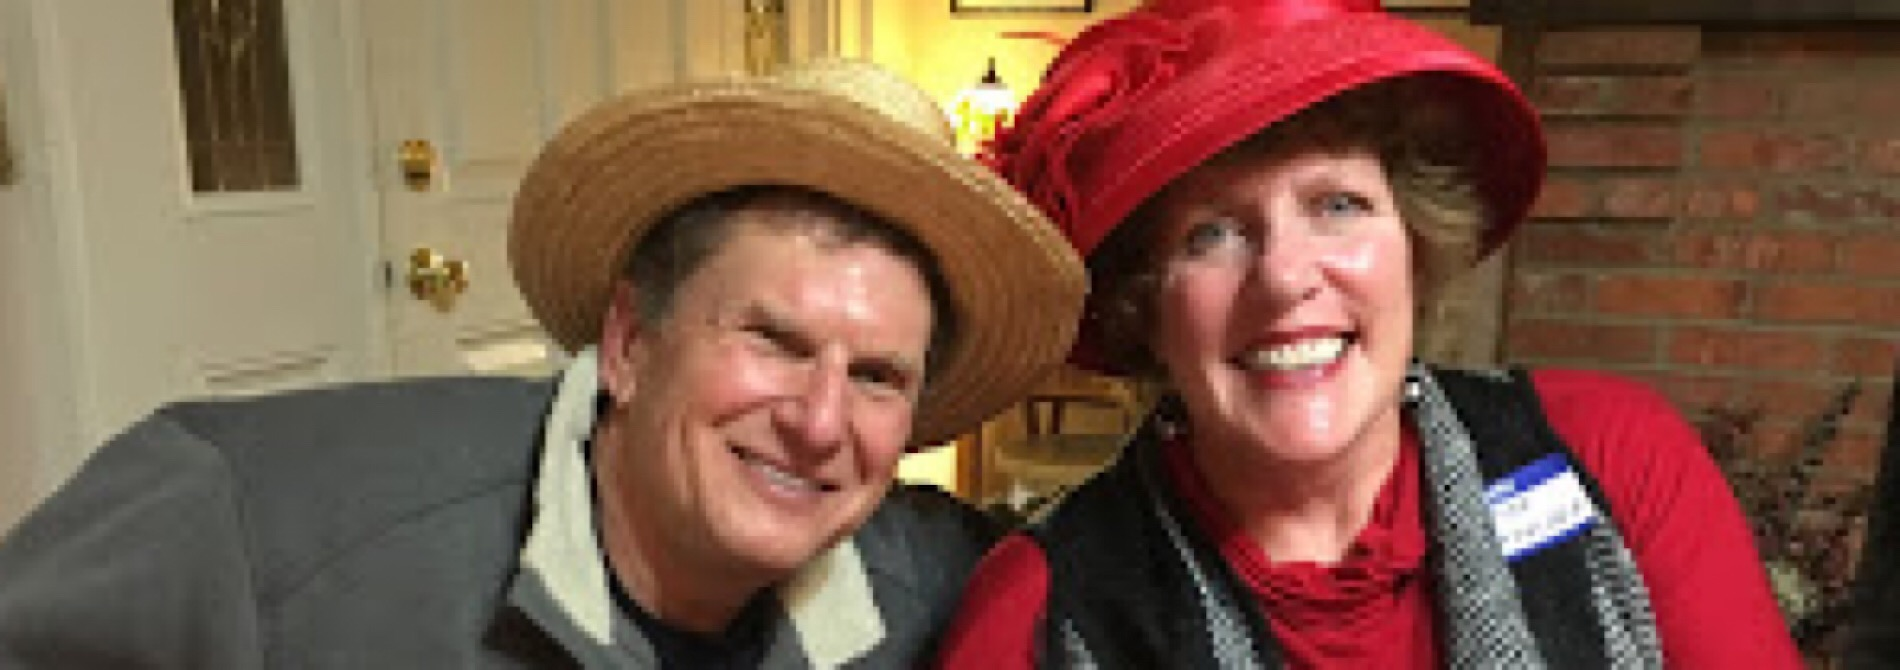 man with woman in red hat